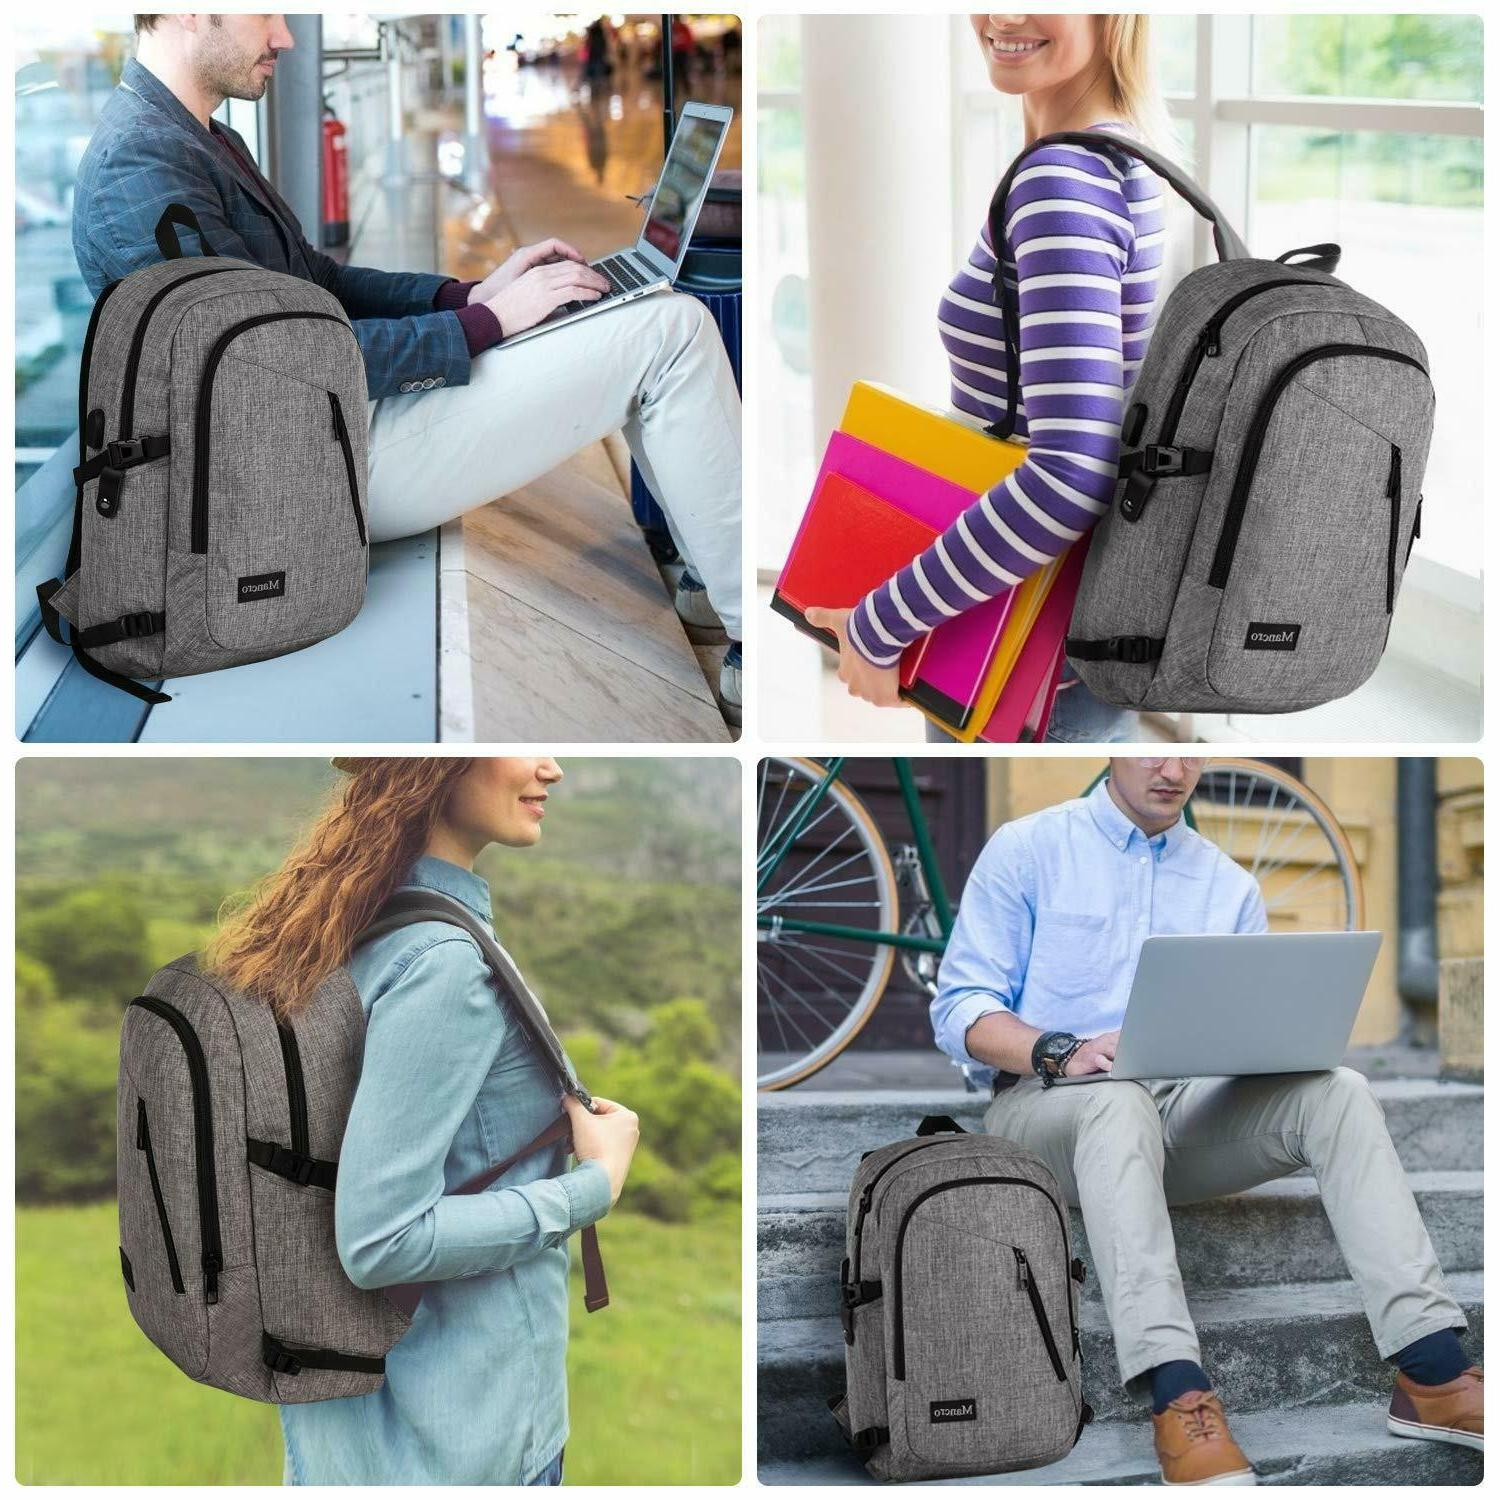 Mancro School Backpack, Anti Theft Bag